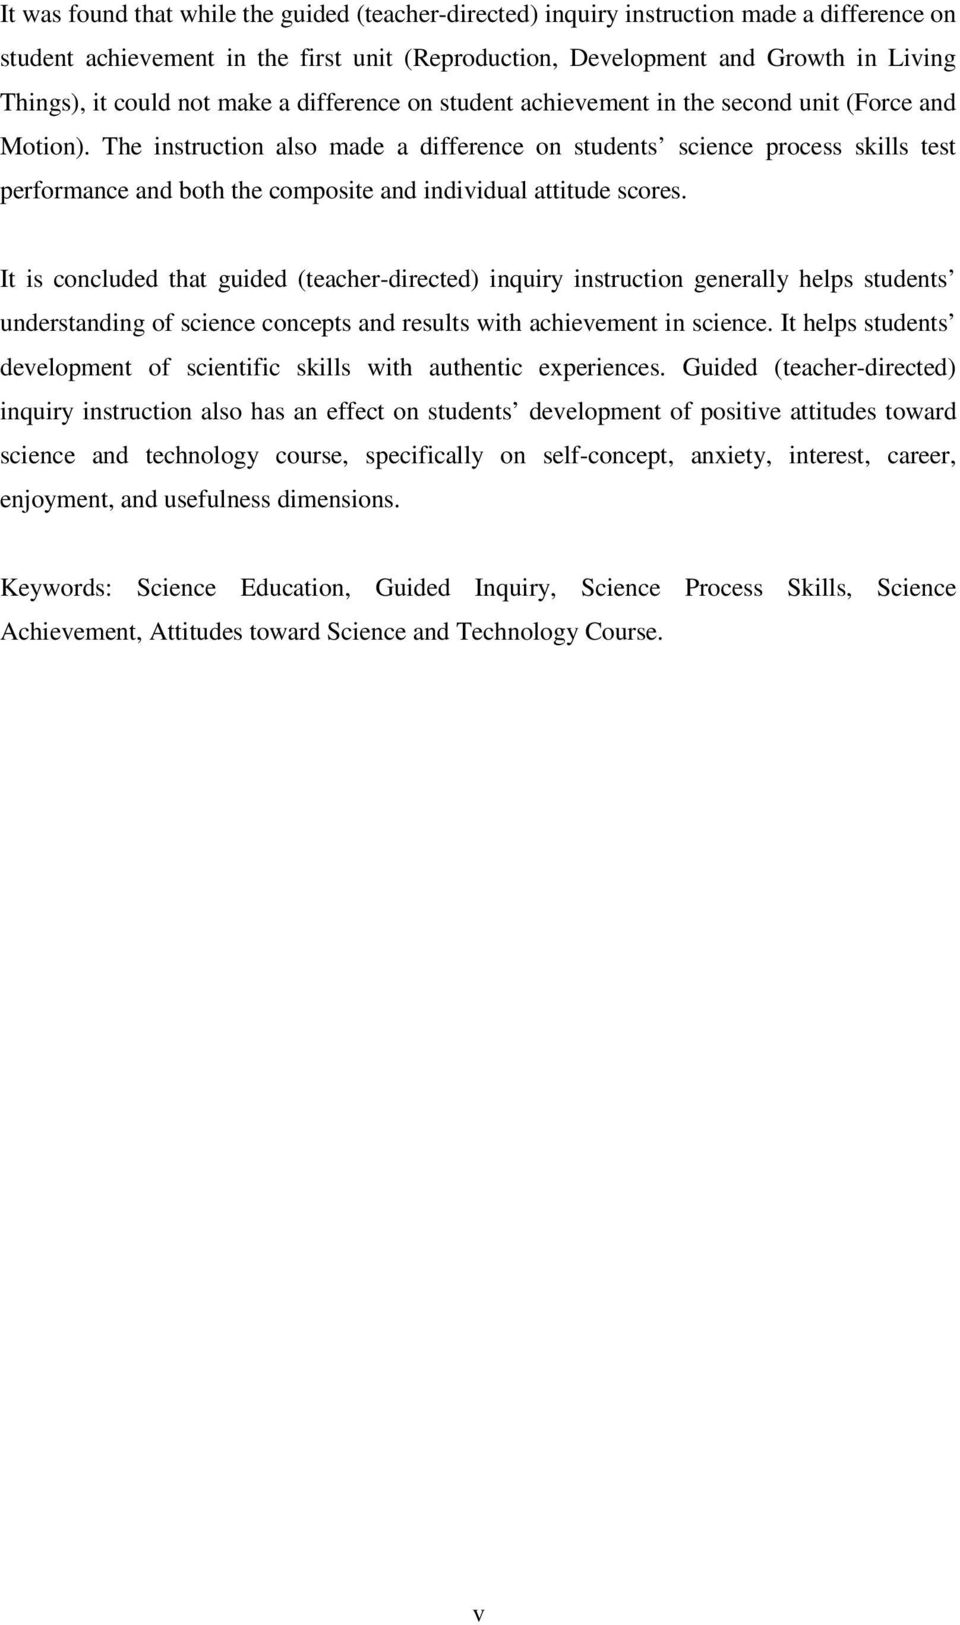 The Acquisition Of Science Process Skills Through Guided Teacher